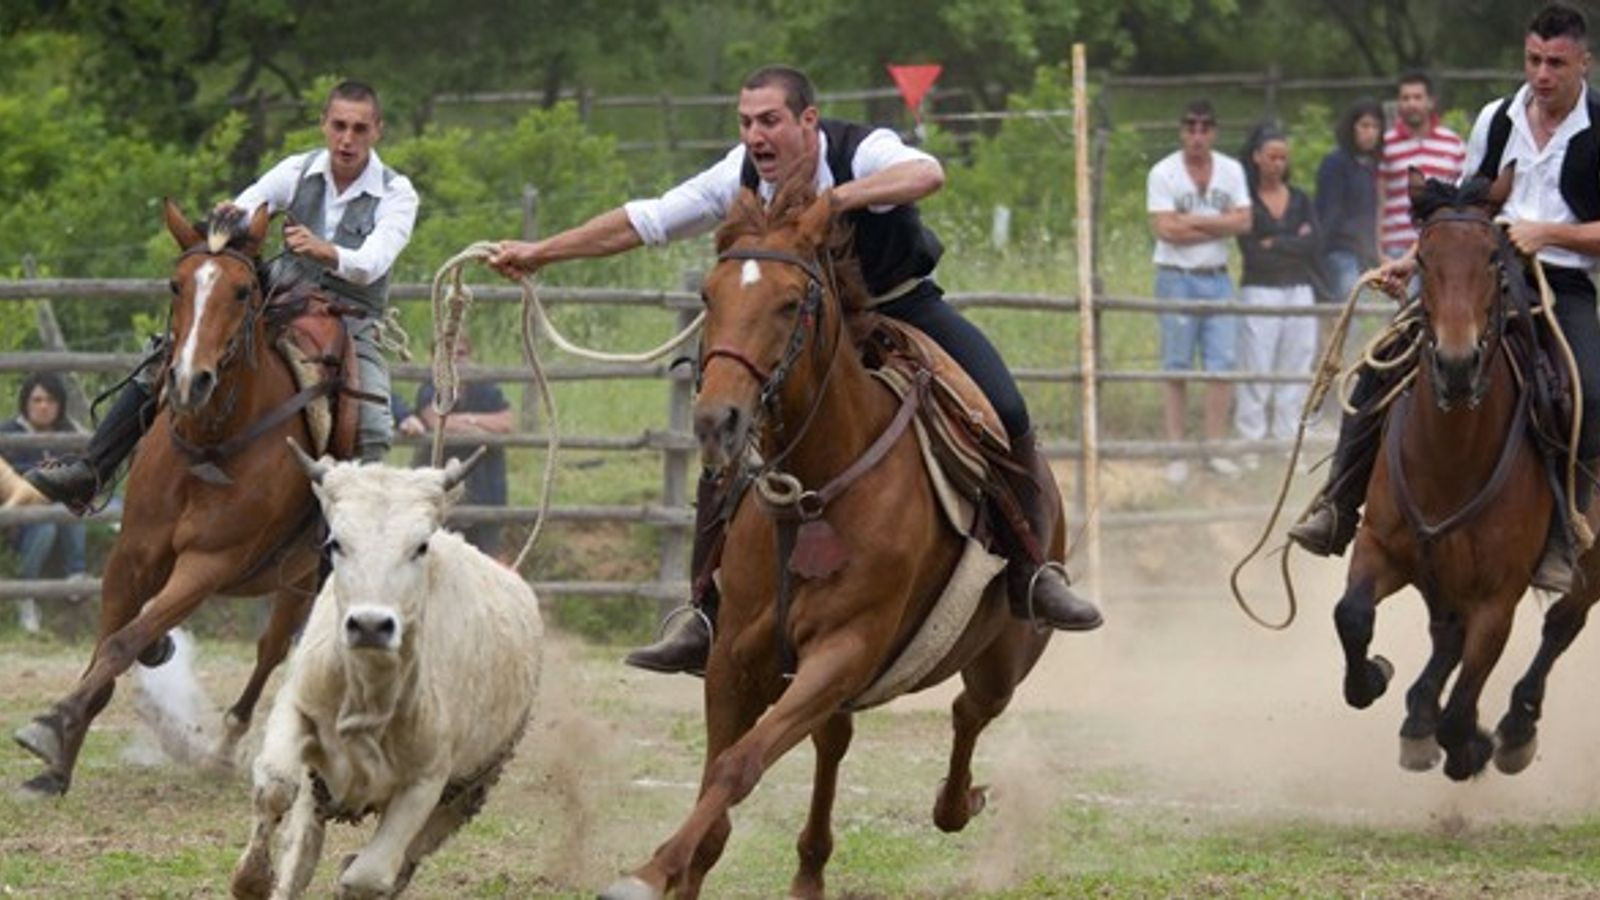 Butteri cowboys at a ranching tournament, Canale Monterano